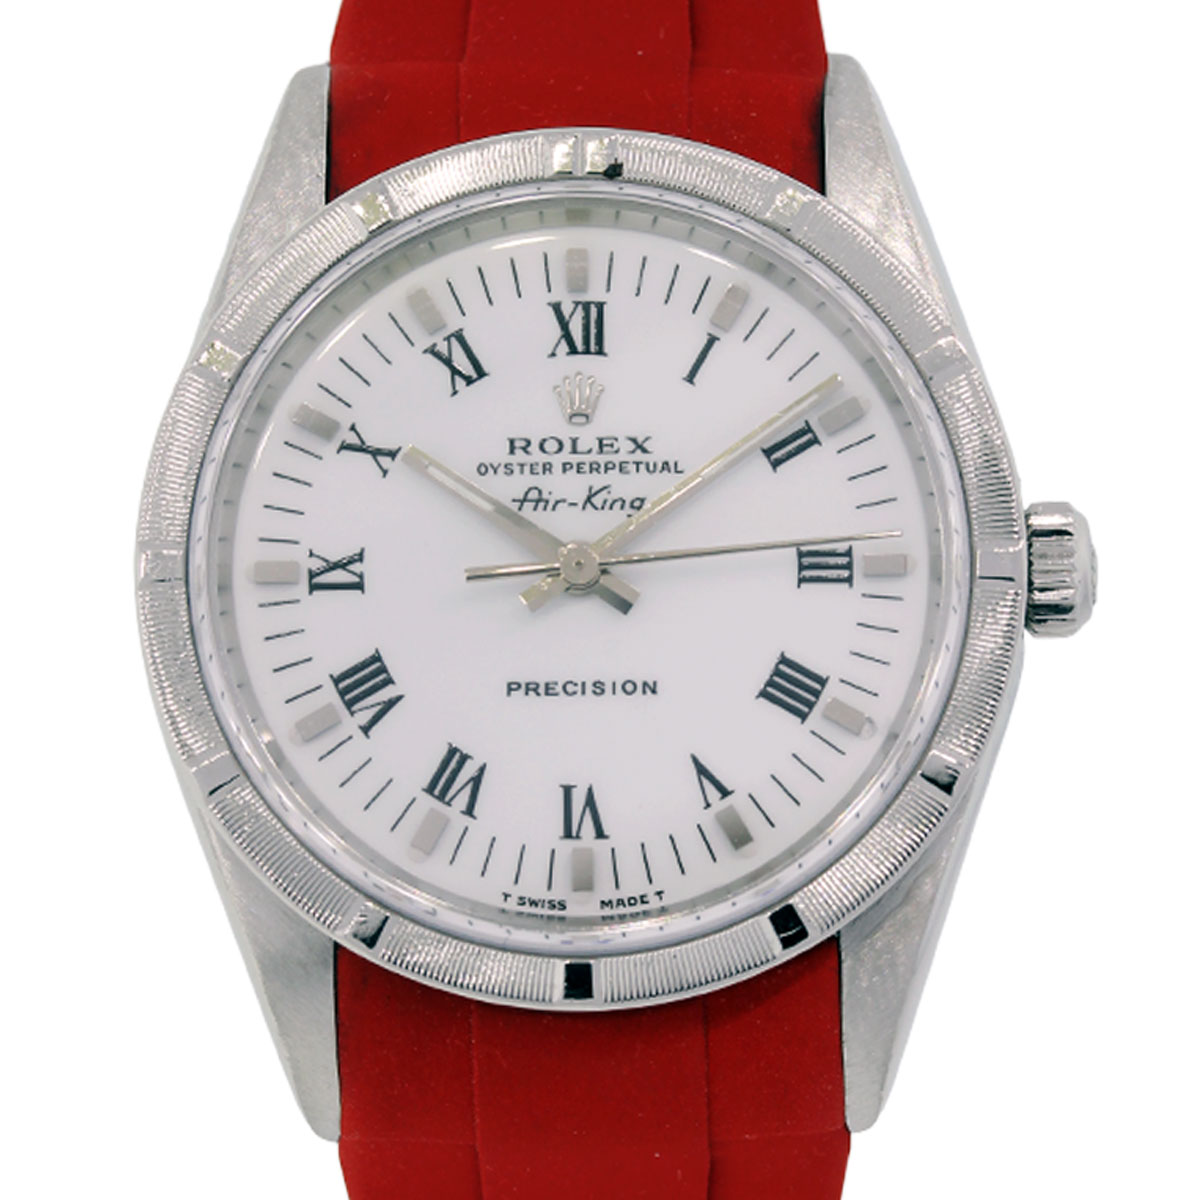 Rubber Rings For Men >> Rolex 14010 Air King Steel on Red Rubber Strap Watch